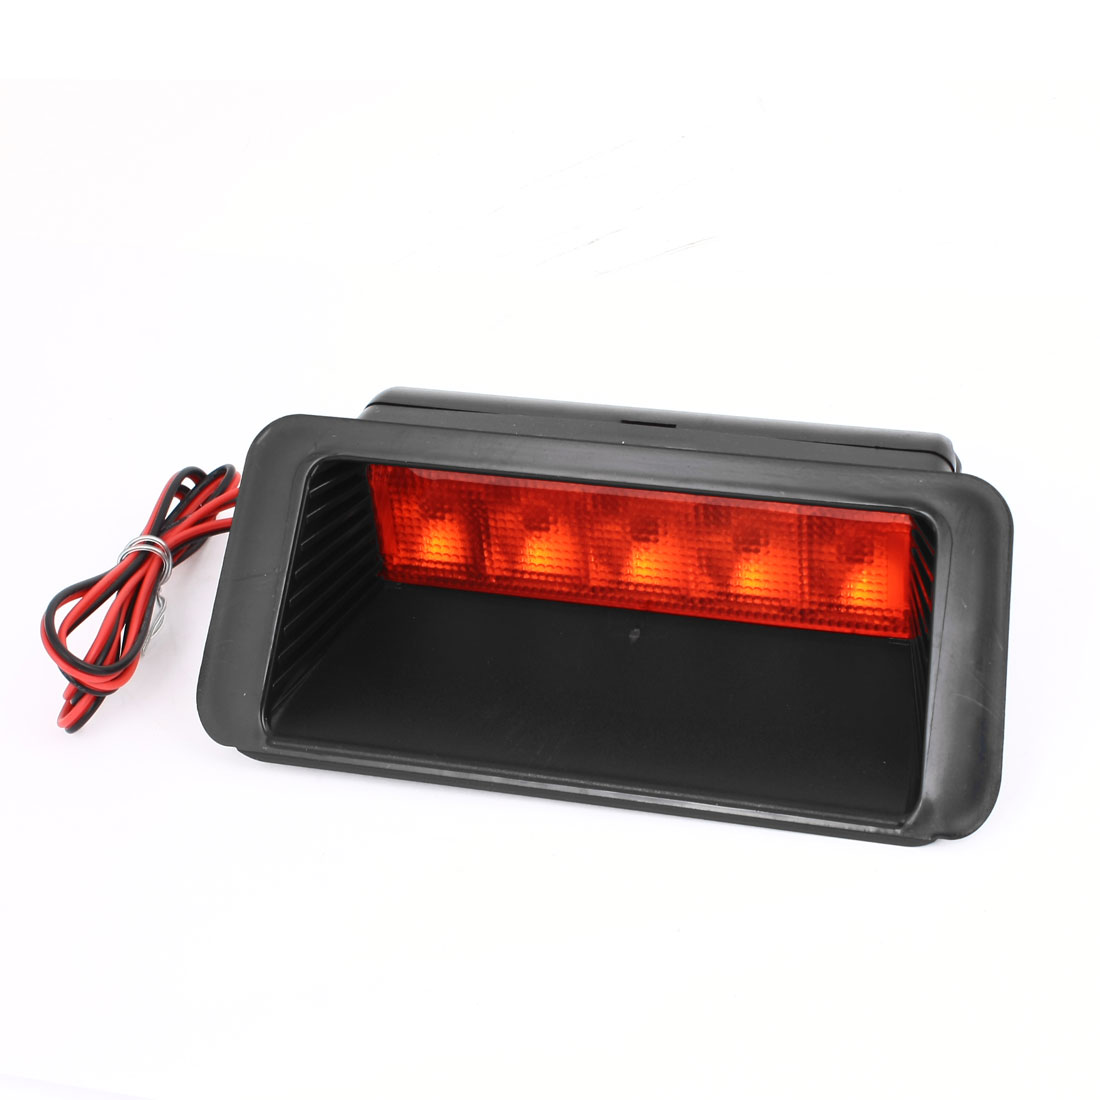 Unique Bargains Accessory 5 Red LED High Mount Brake Rear Tail Lamp Signal Light for Car